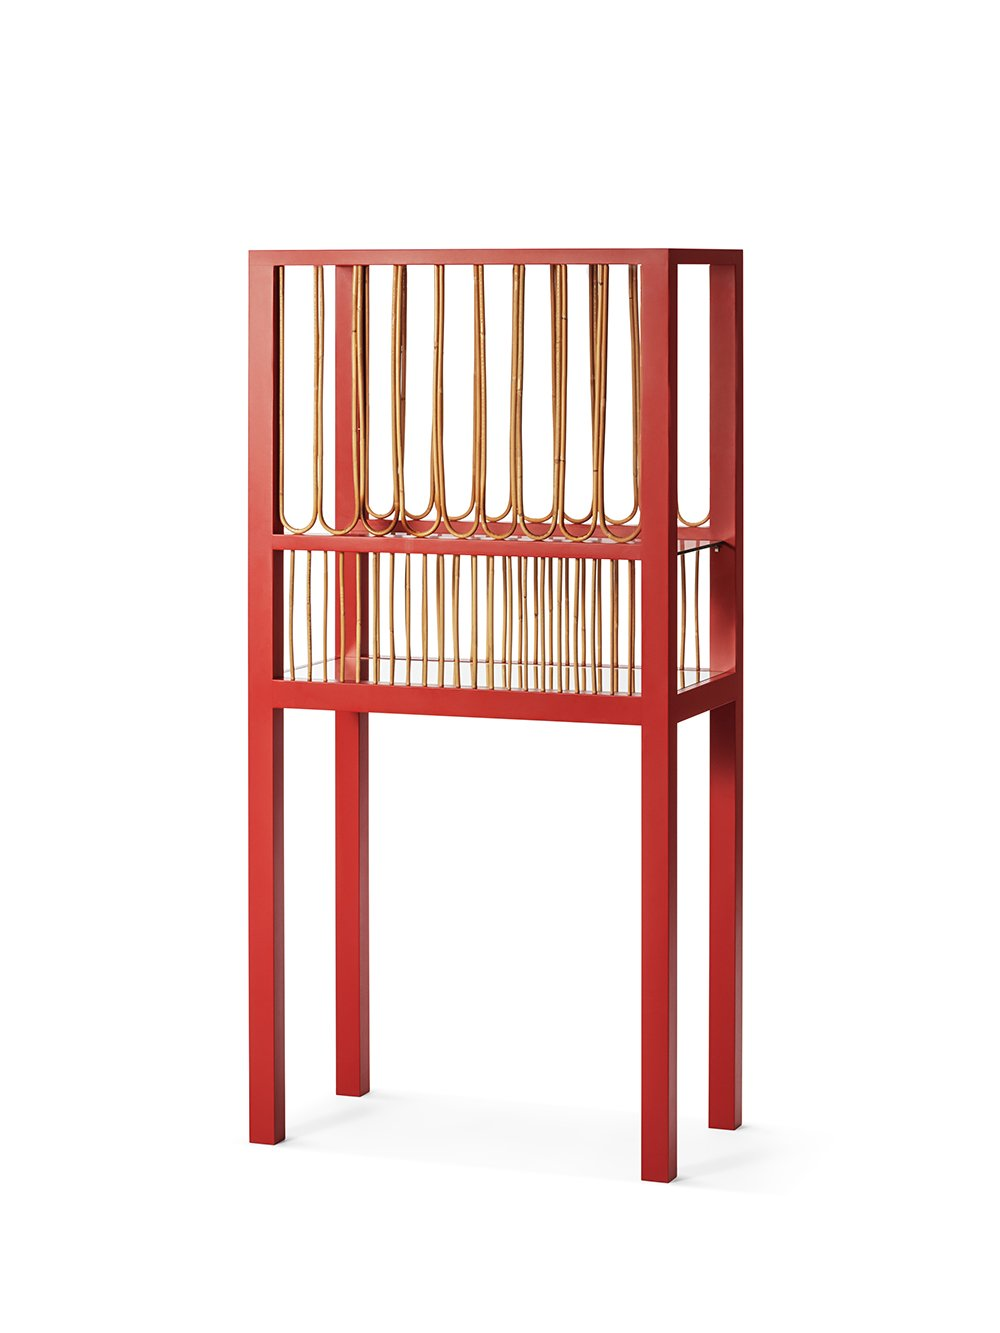 Wooden, rattan and glass Red Cabinetat 3daysofdesign